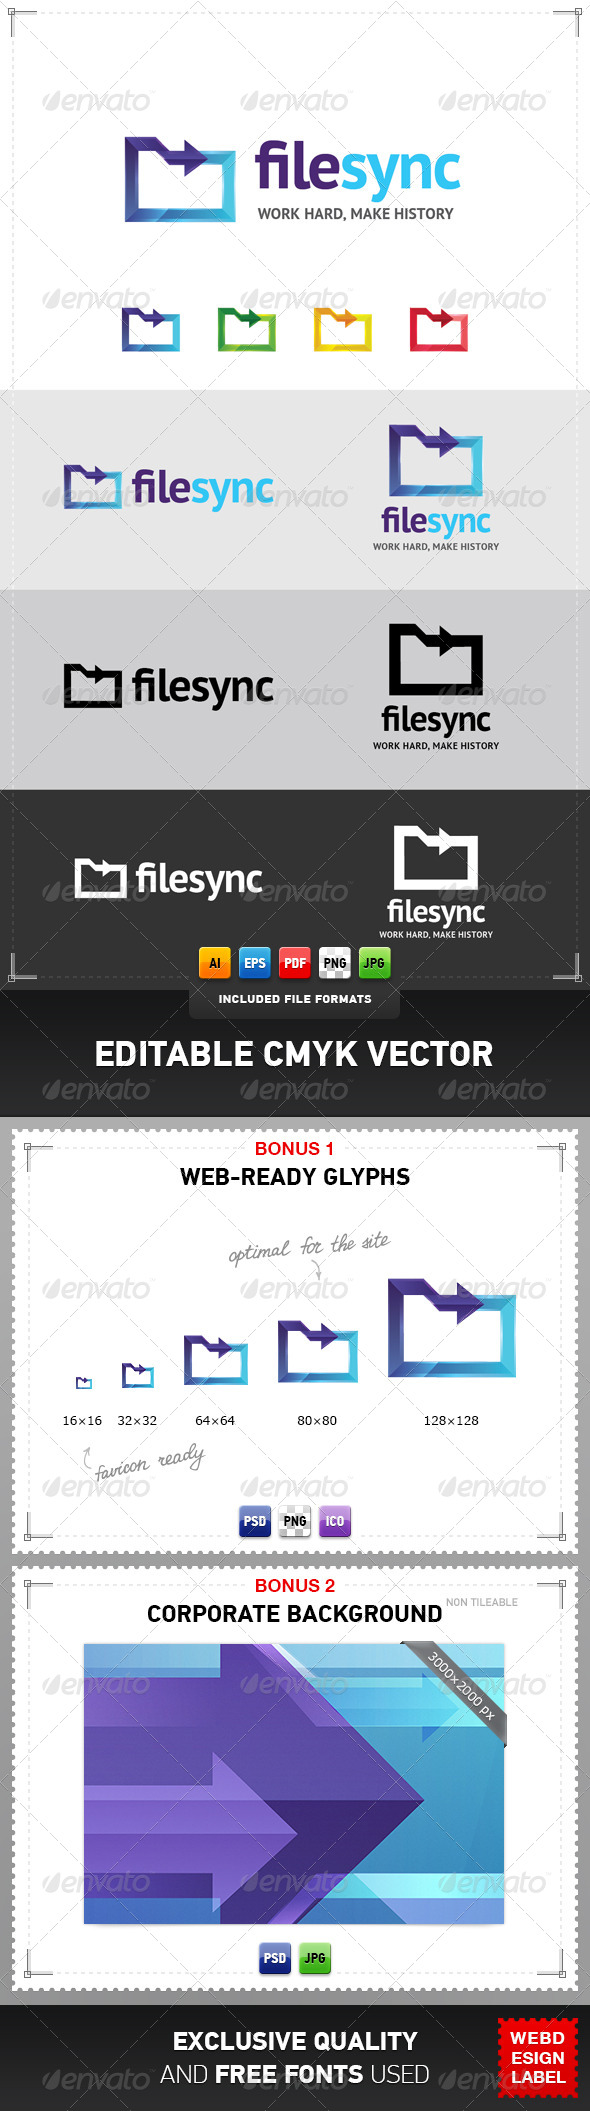 GraphicRiver File Sync Logo 4078914